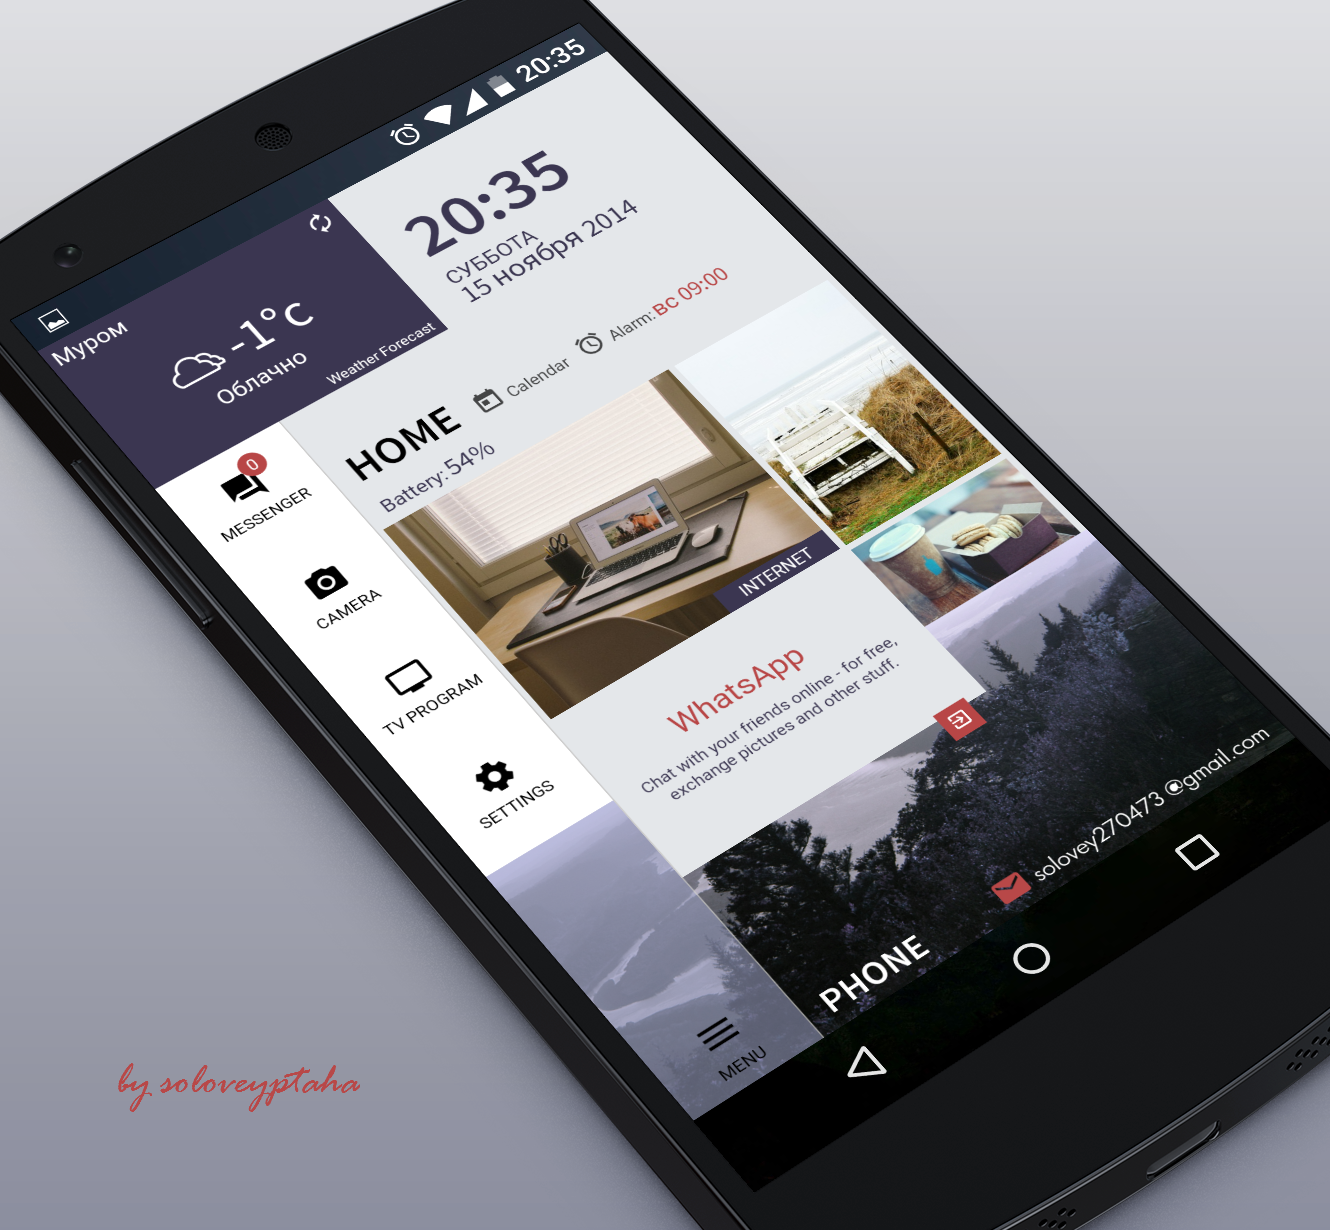 tiles Android Homescreen